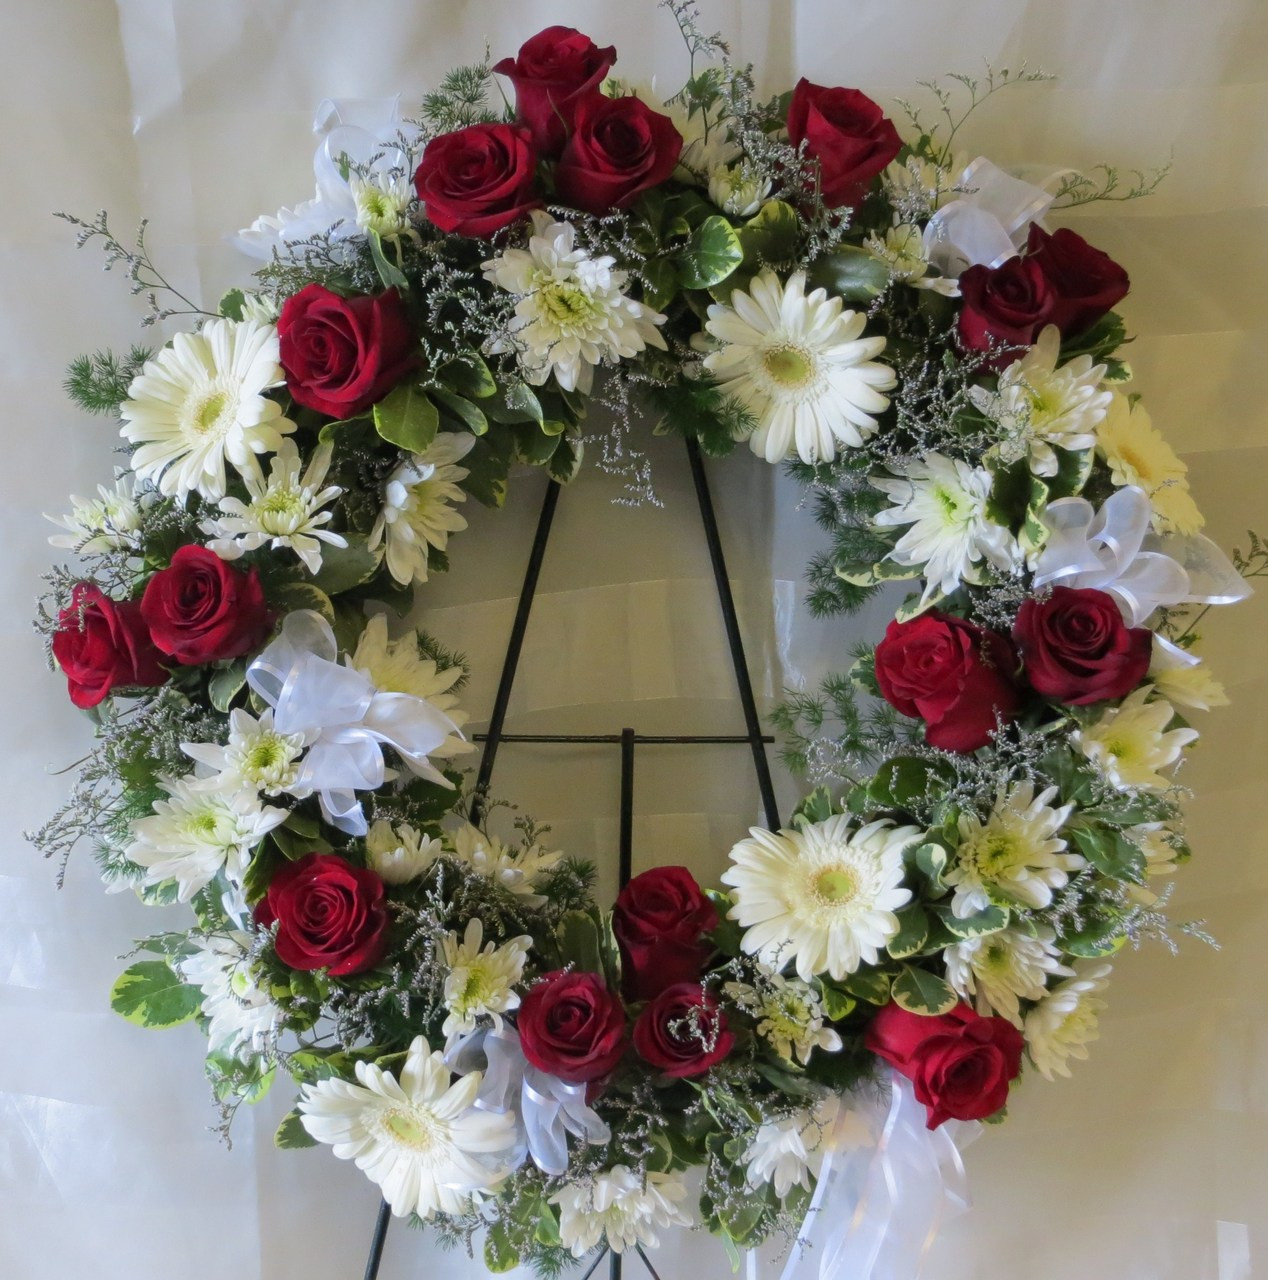 Divine Wreath Of Red Roses And White Gerberas For Sympathy Floral